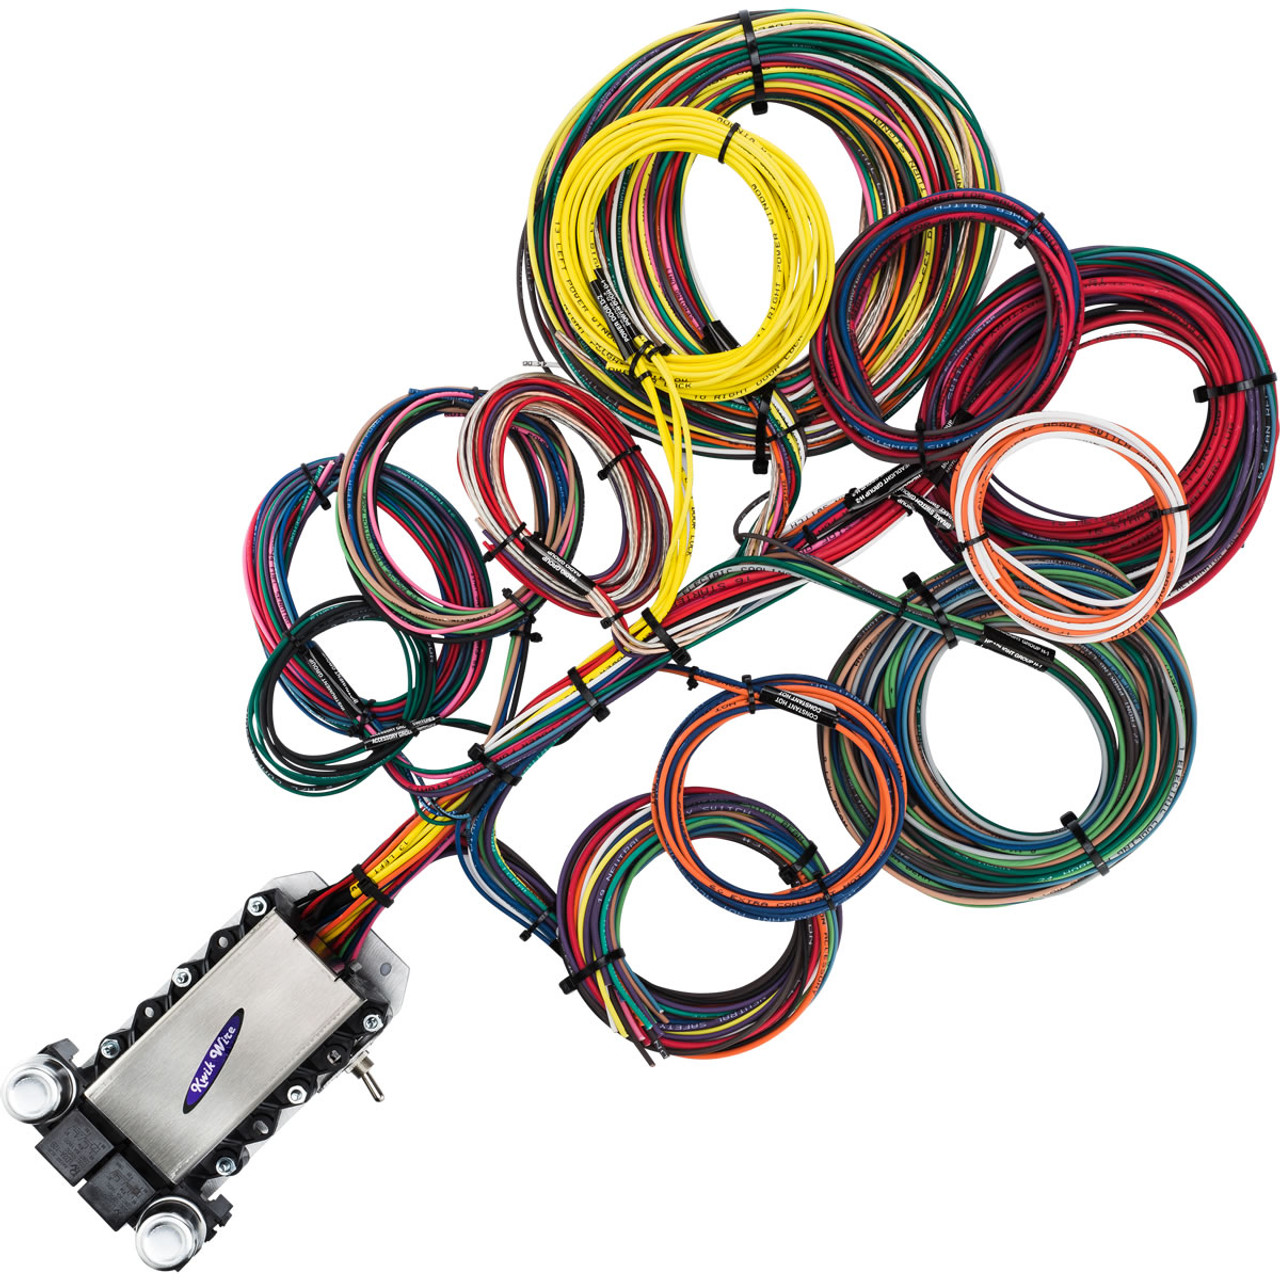 22 circuit wire harness kwikwire com electrify your ride wire harness instructions wire harness instruction [ 1200 x 1200 Pixel ]